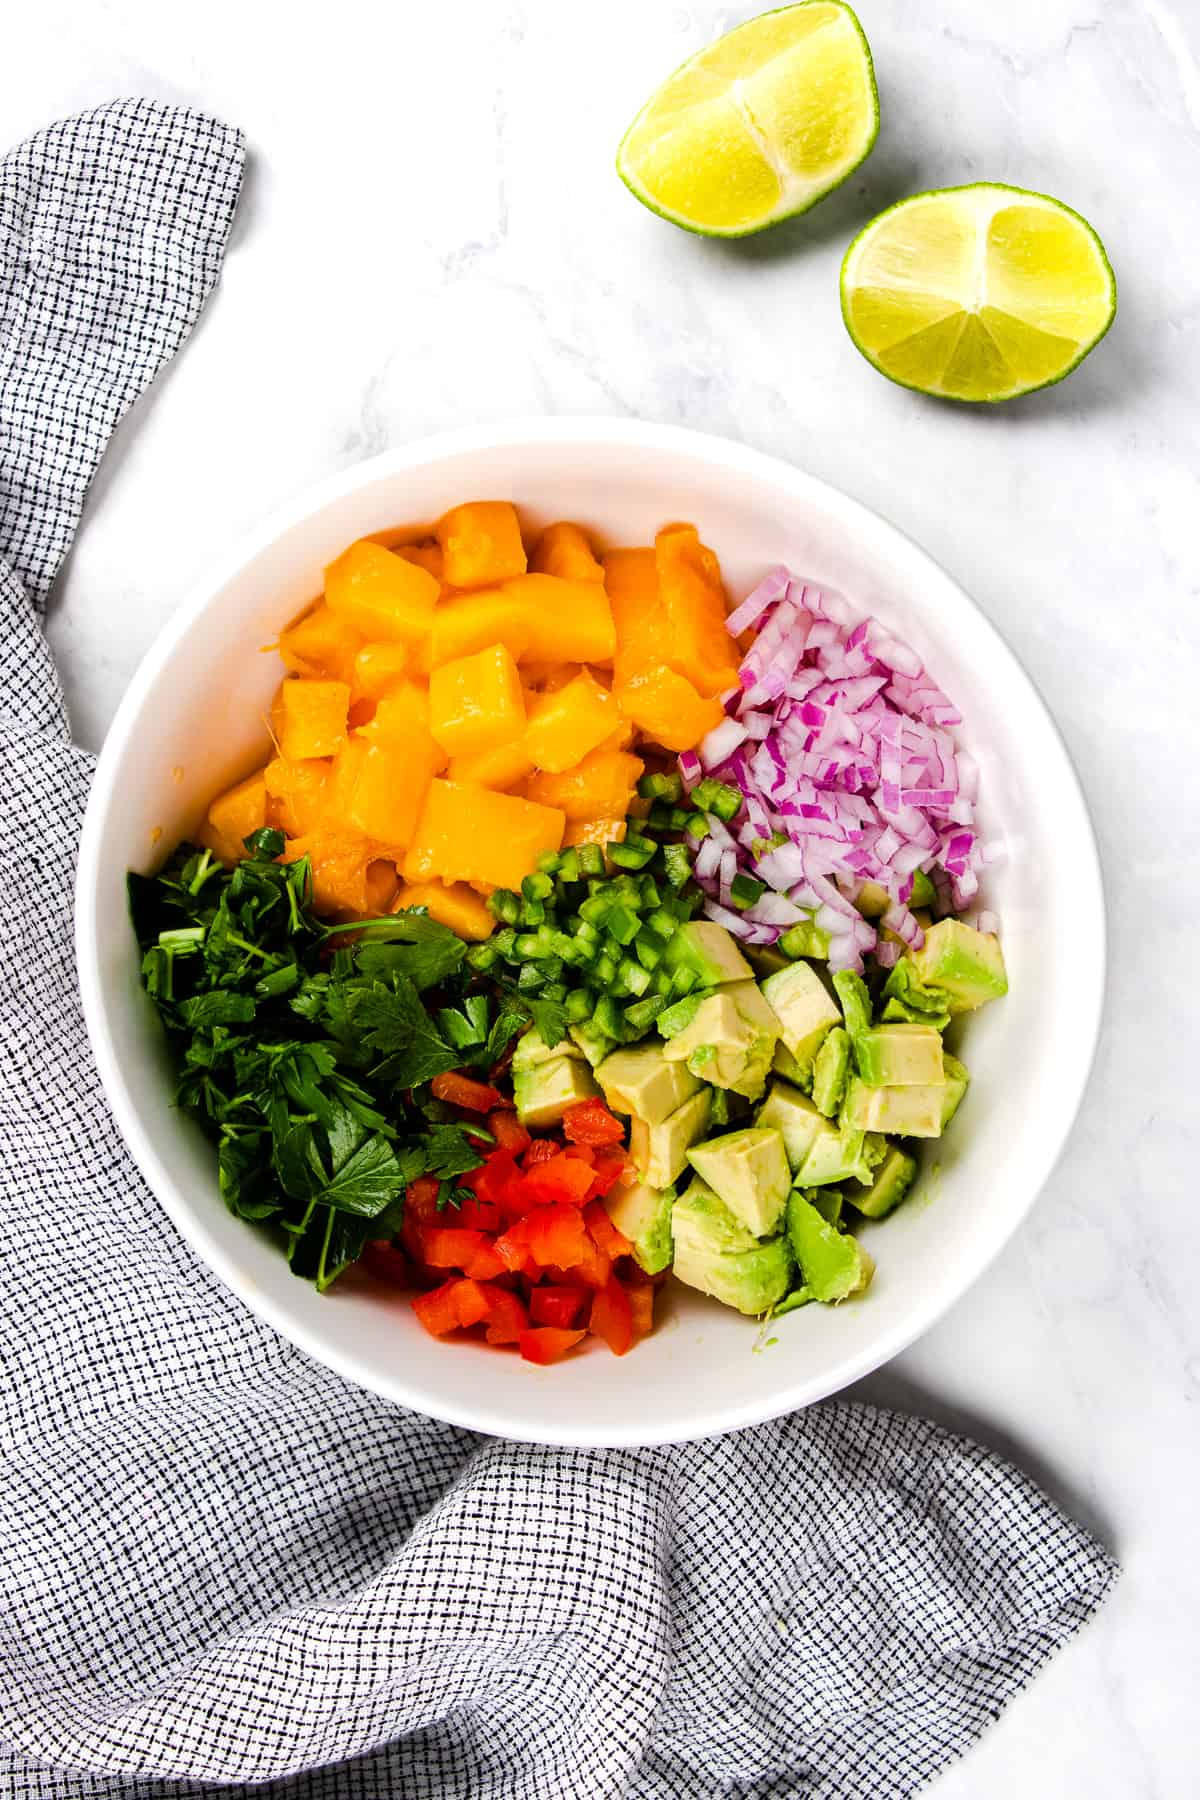 Chopped ingredients for mango salsa in a white bowl.